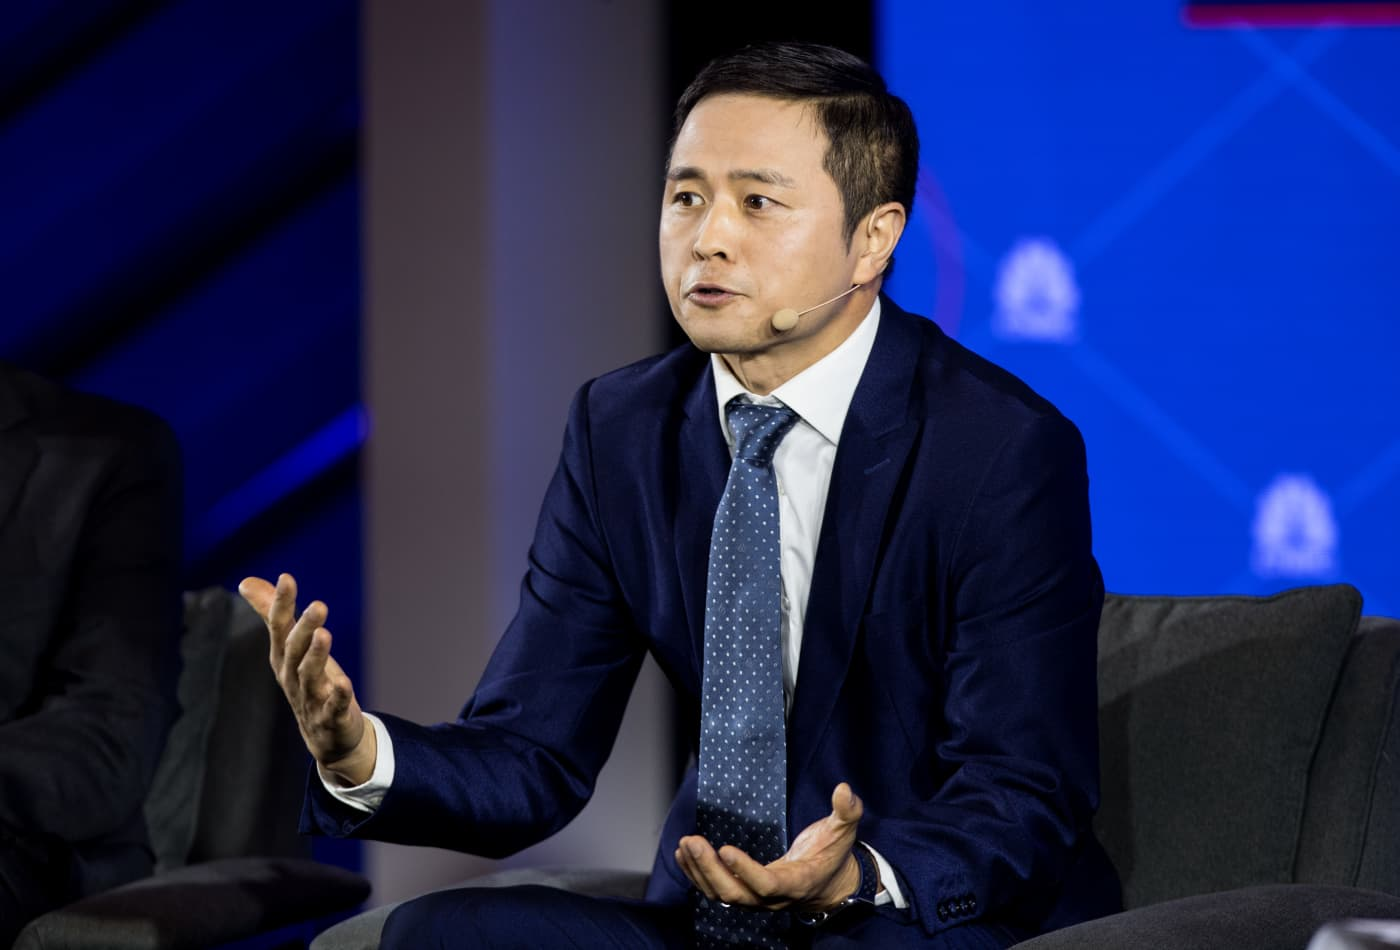 Airbnb China president: Localization is key if we want to be successful in the country